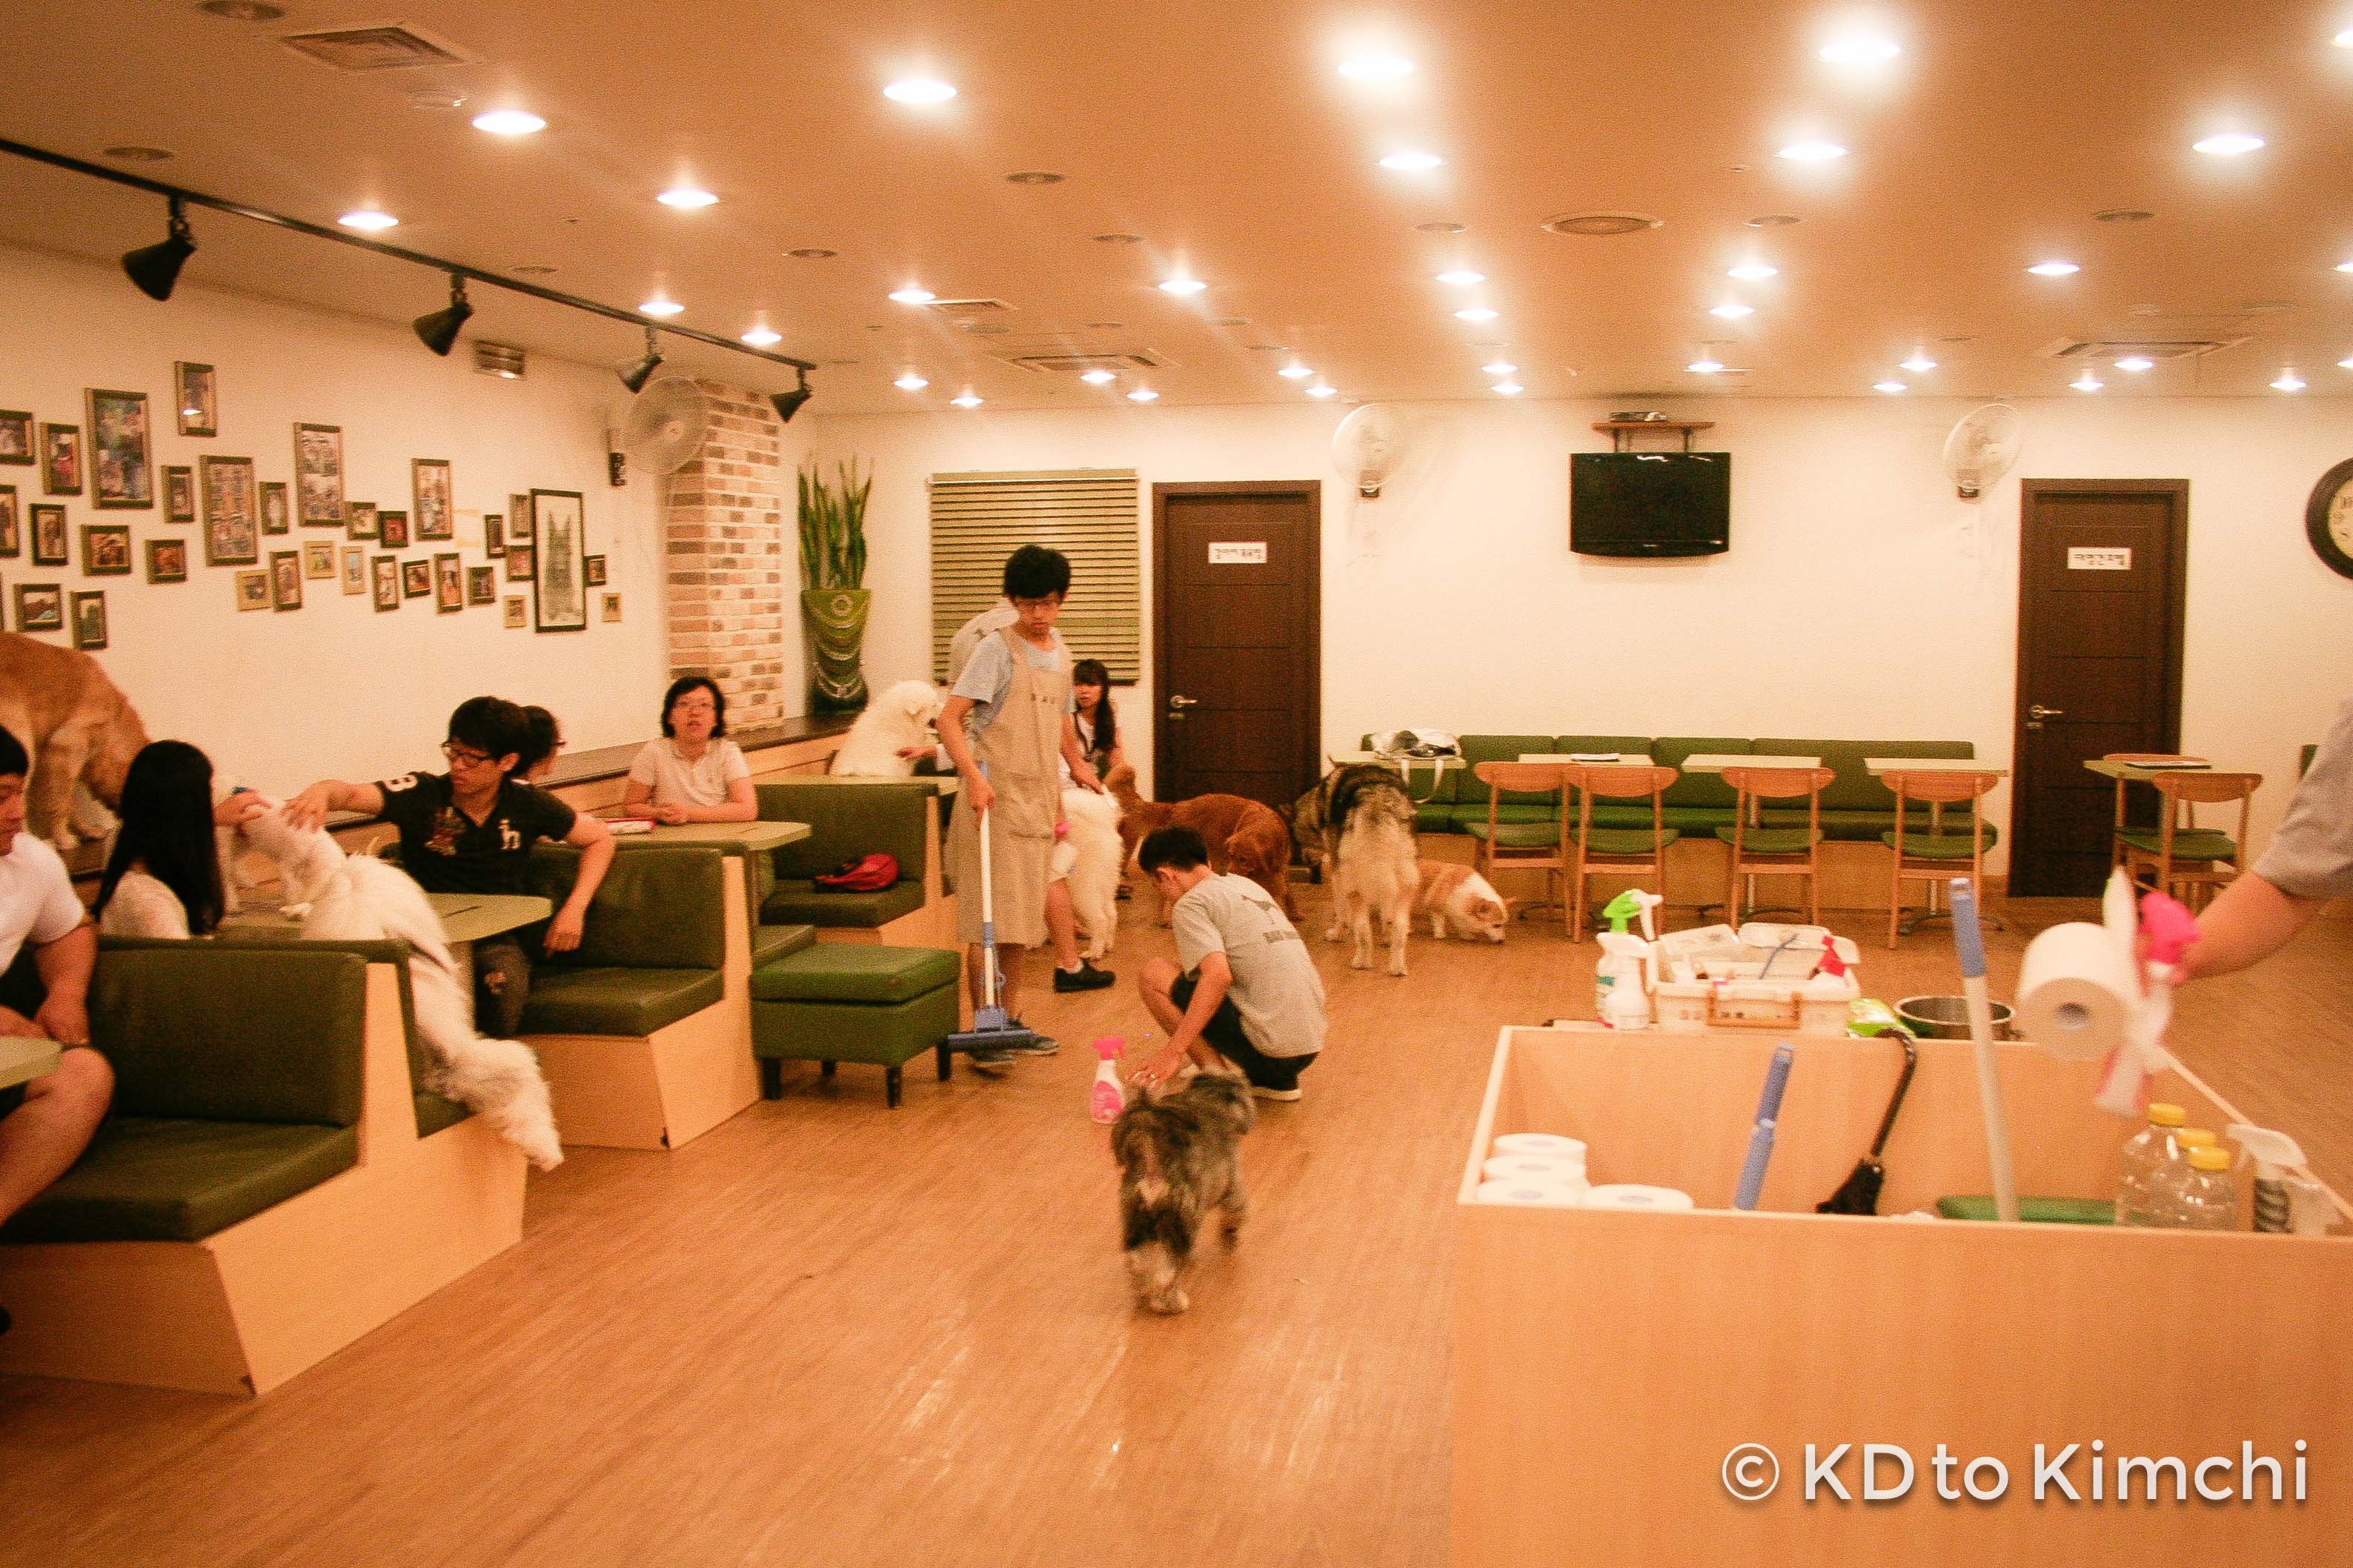 Checking out BAU HOUSE: a Korean dog café! | From KD to Kimchi